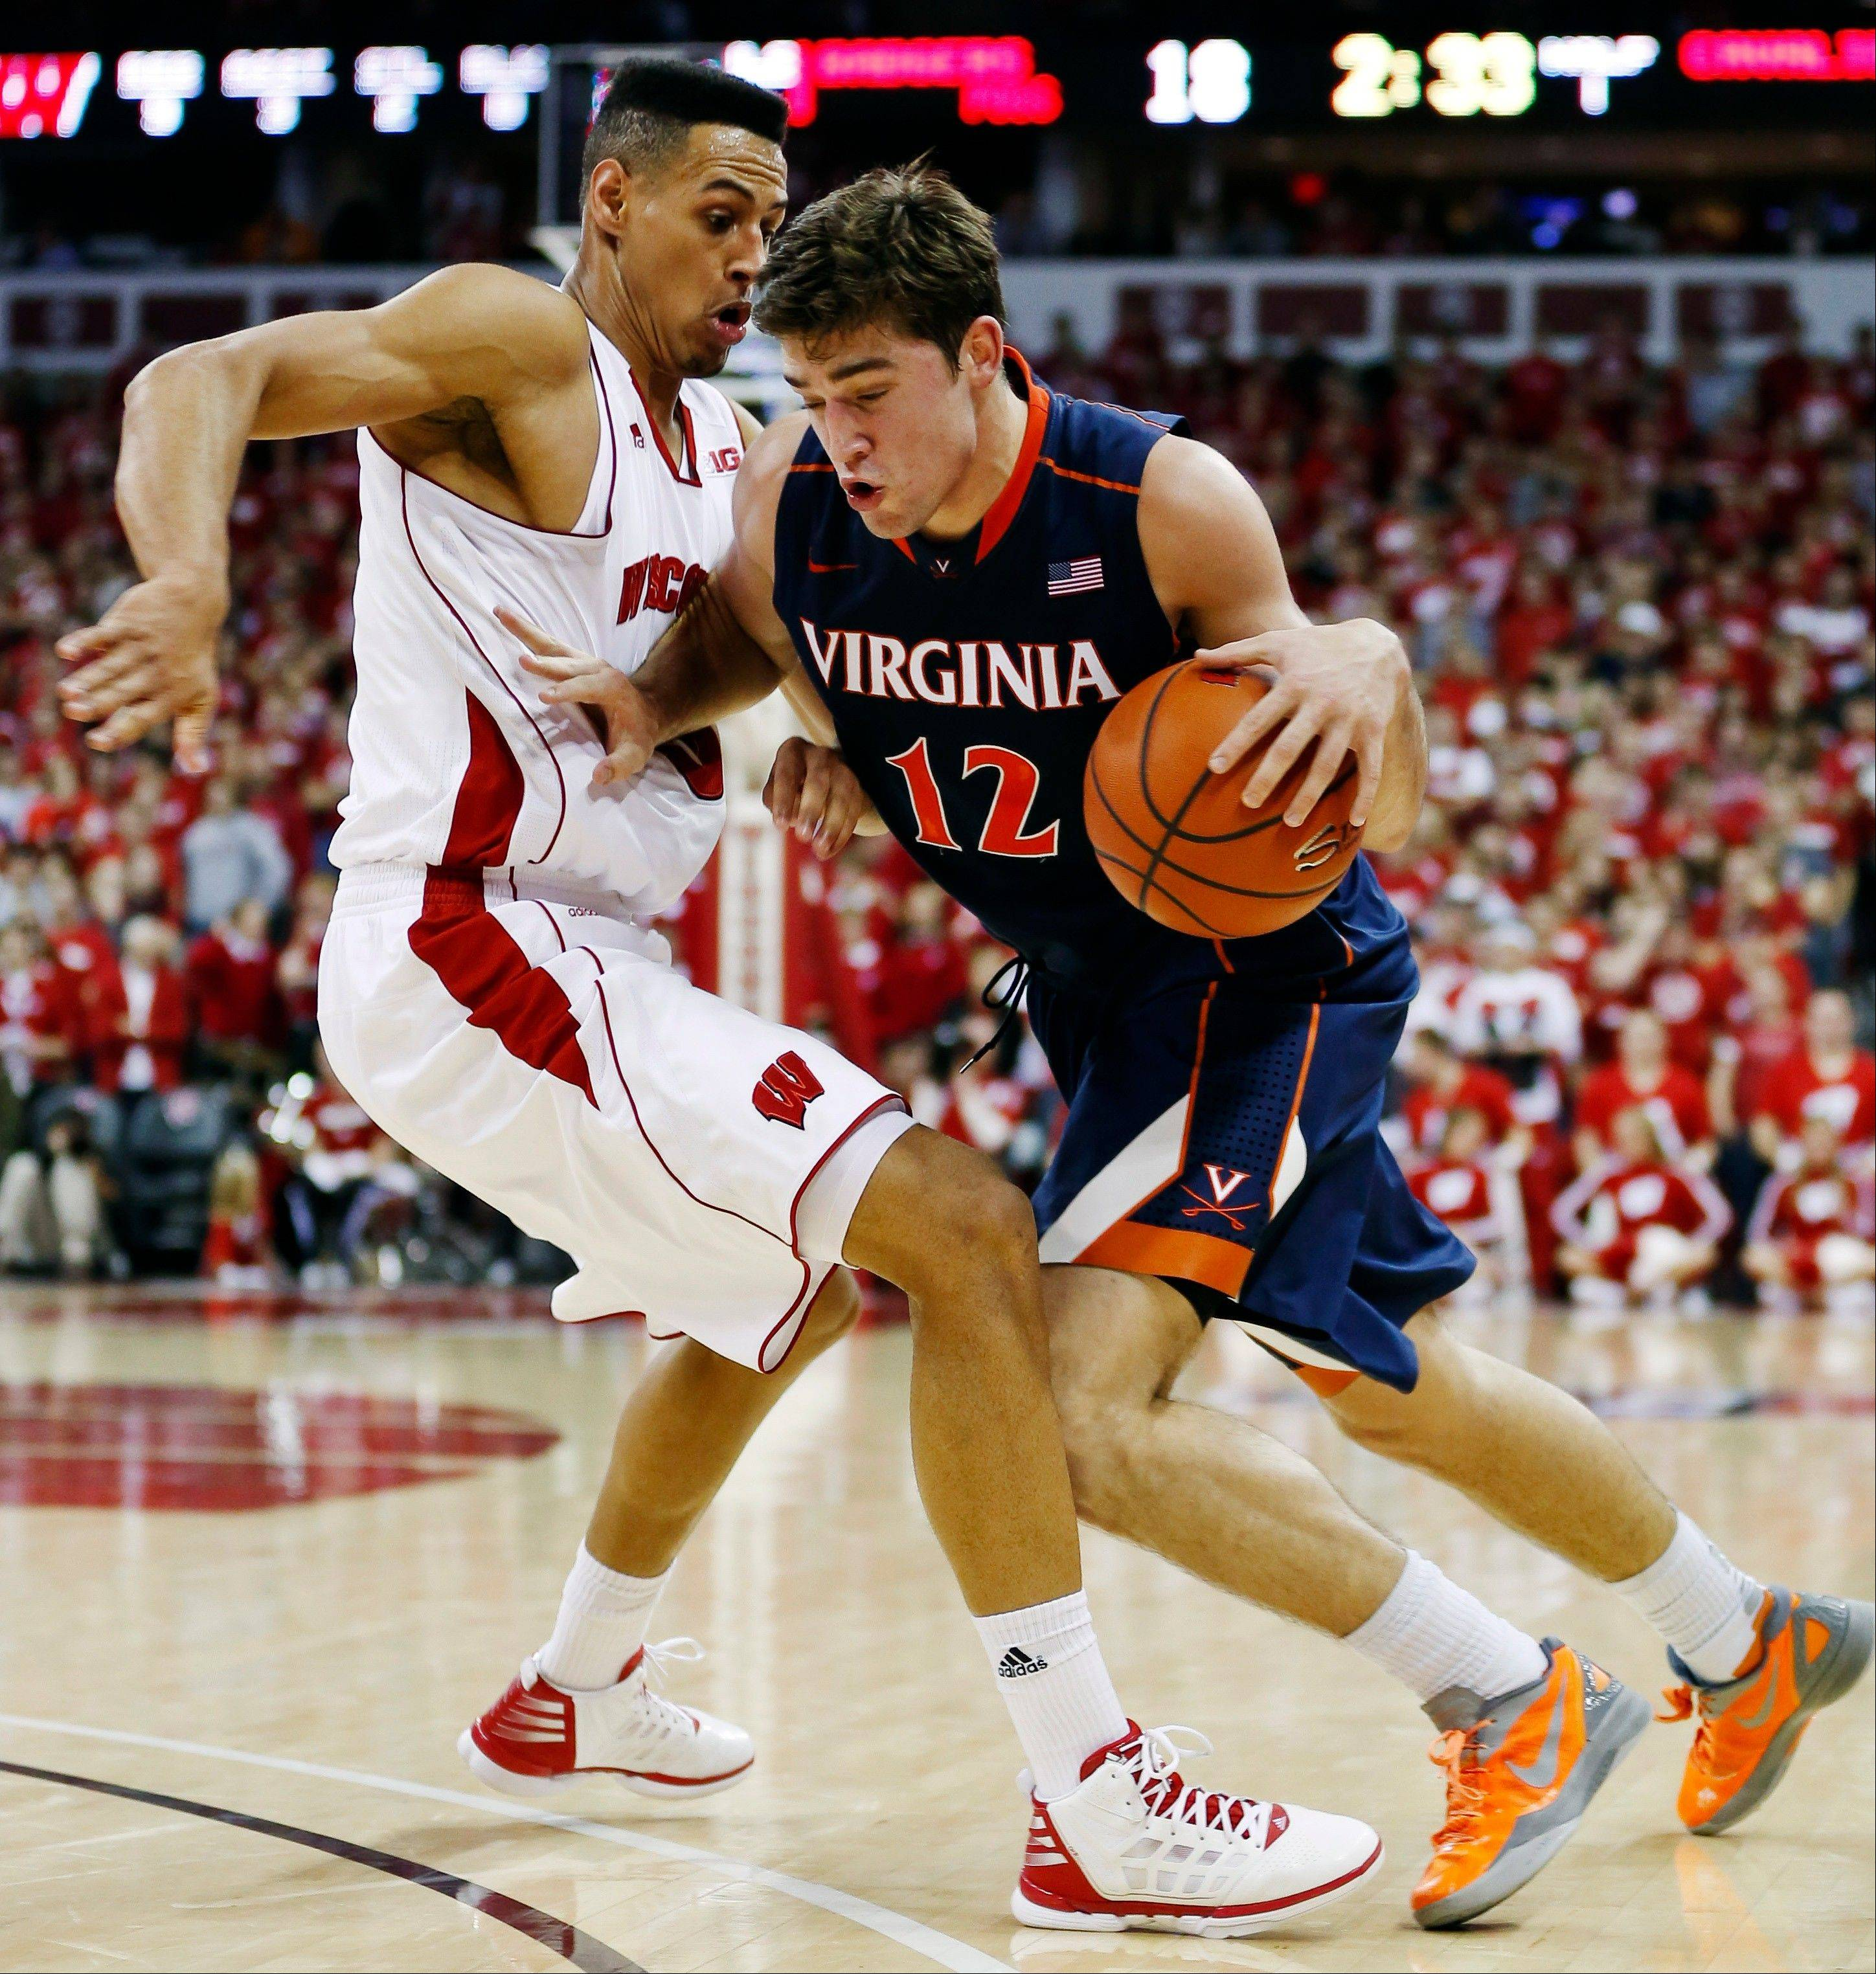 Virginia�s Joe Harris drives on Wisconsin�s Ryan Evans Wednesday during the first half in Madison, Wis.